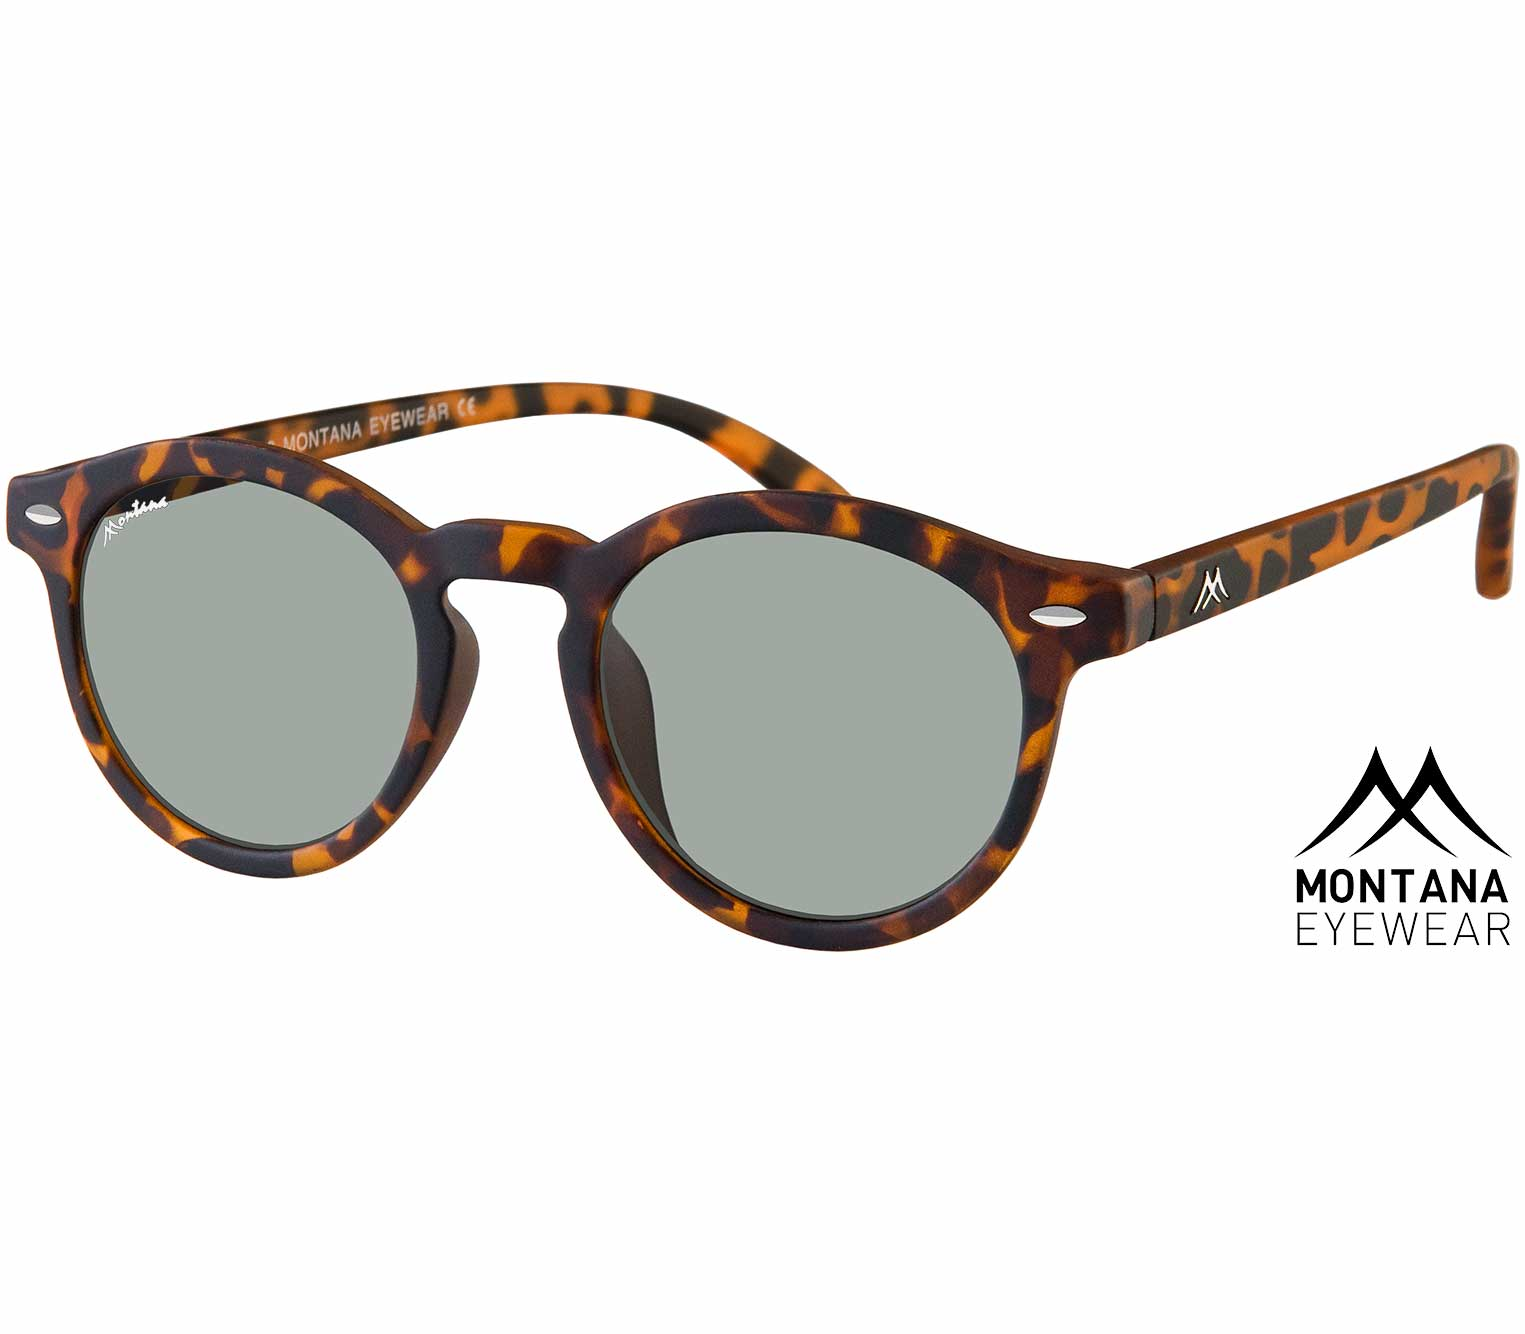 Drift (Tortoiseshell) Retro Sunglasses